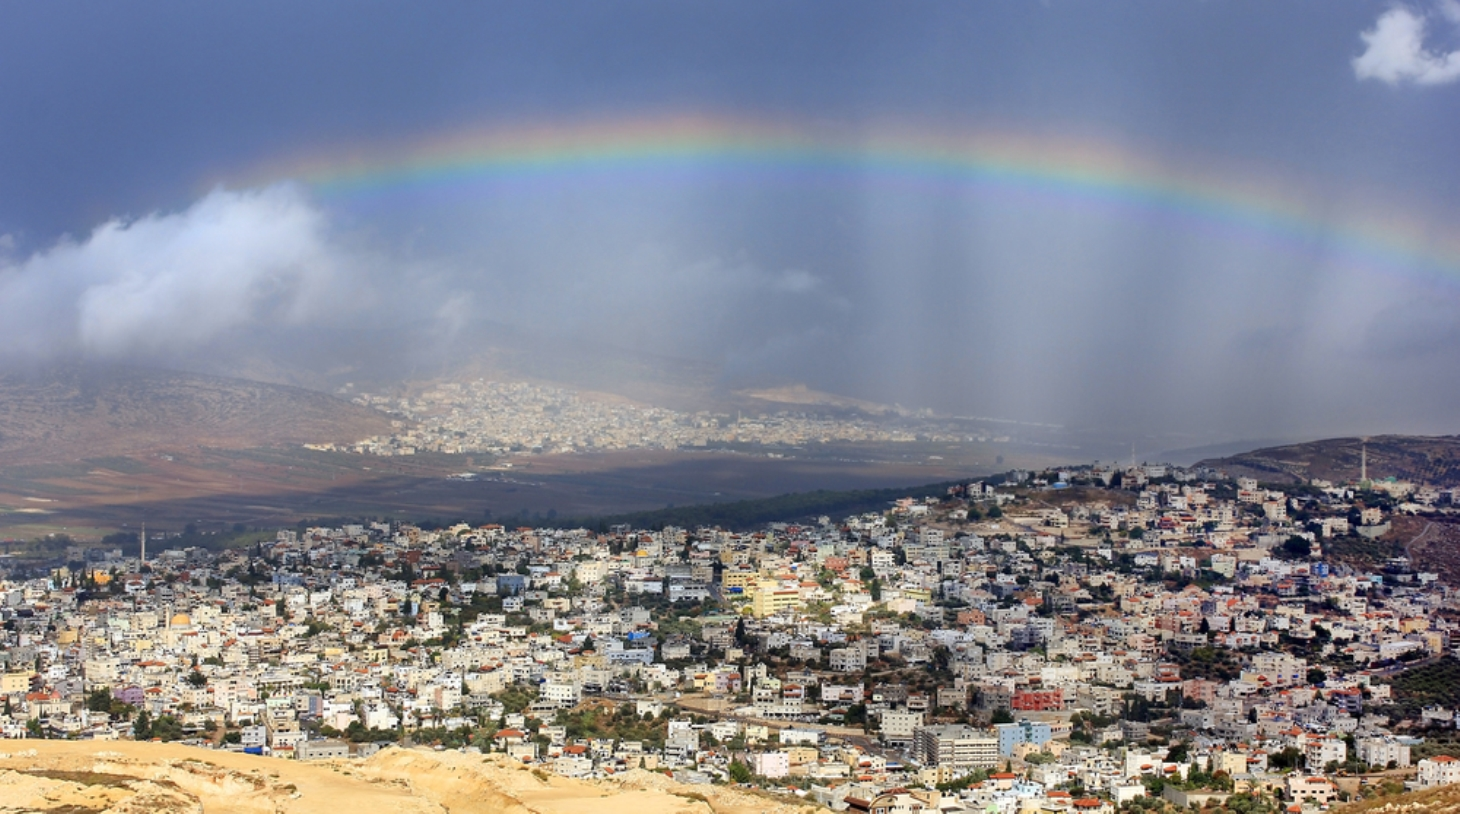 Rainbow over the Galilee village of Kafr Cana. Image via Shutterstock.com